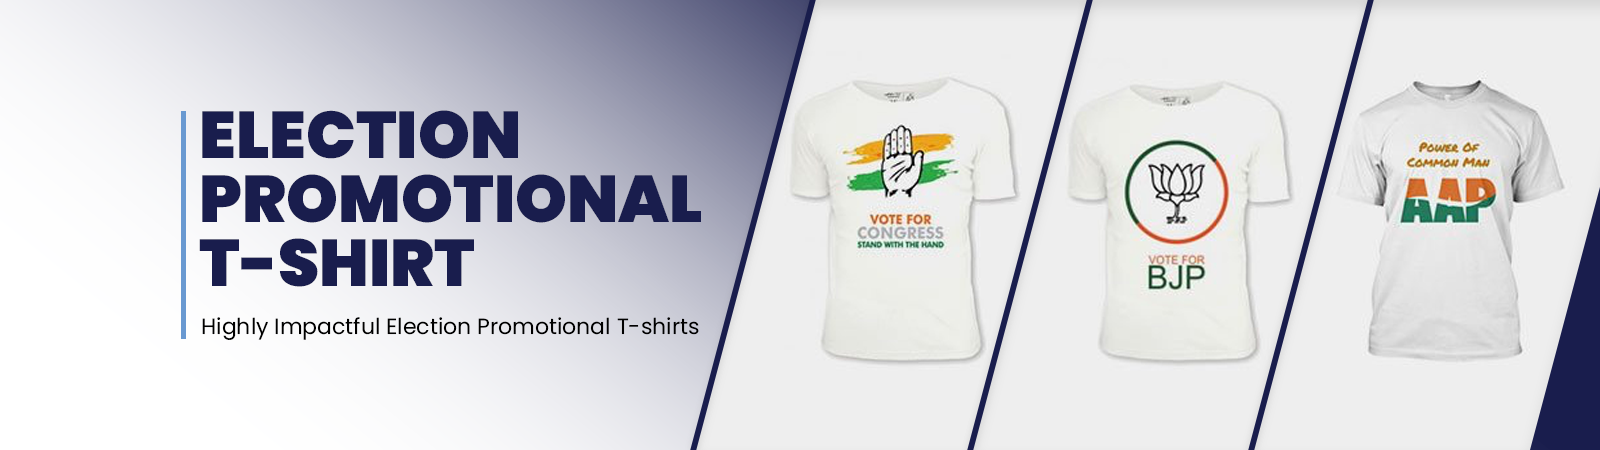 JDU Election T-Shirt